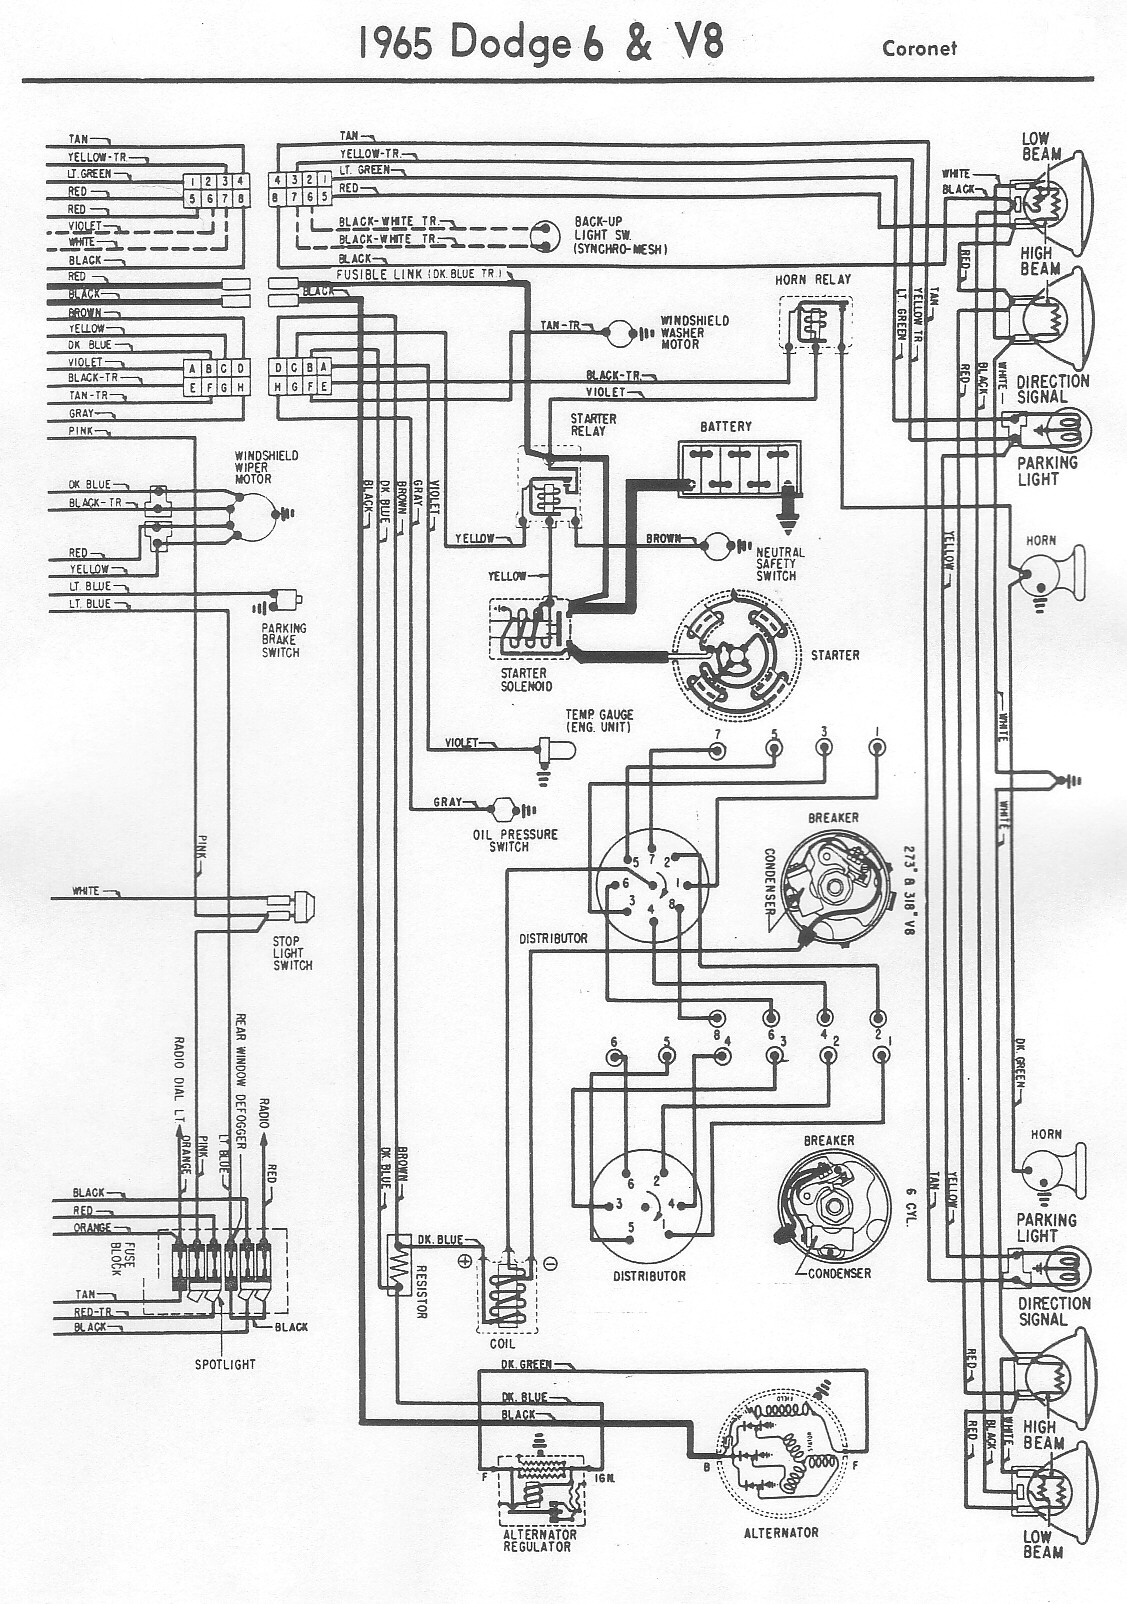 hight resolution of wiring diagram for 1966 dodge coronet wiring diagram todays dodge wiring diagram wires 1964 dodge coronet